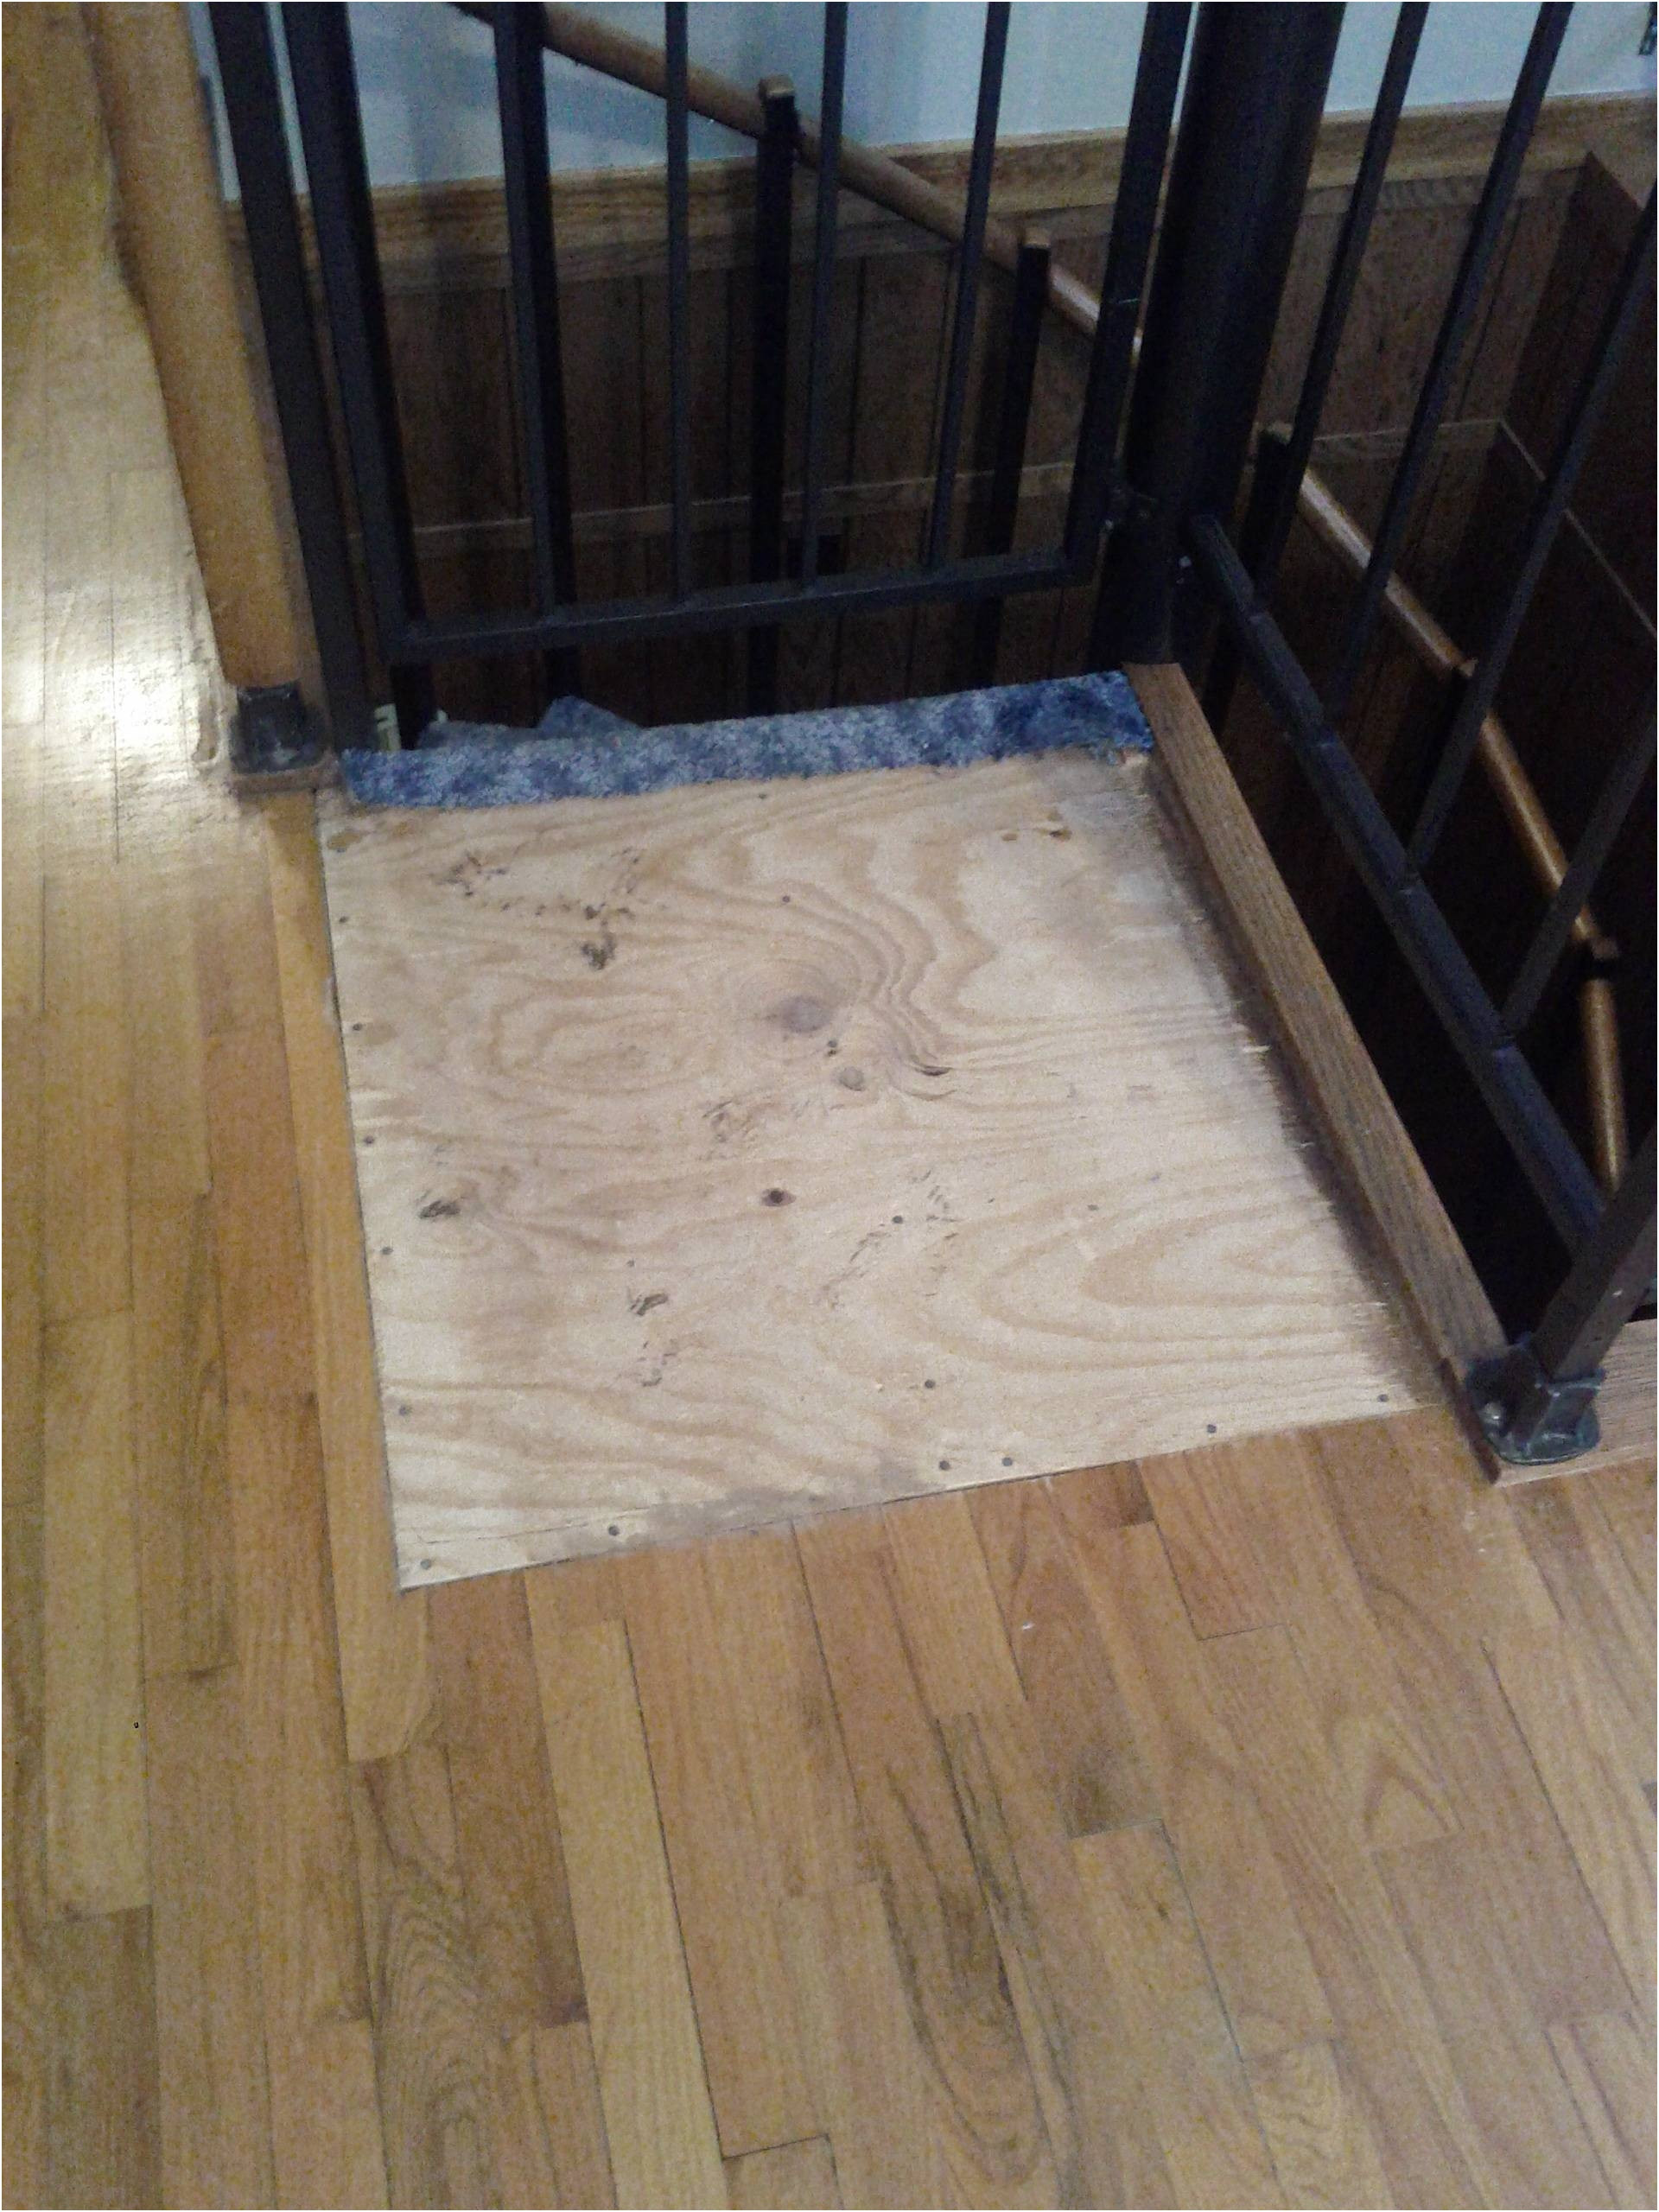 how to install hardwood floors on wood subfloor of how to install engineered wood flooring on concrete slab luxury intended for how to install engineered wood flooring on concrete slab luxury hardwood floor installation how to nail